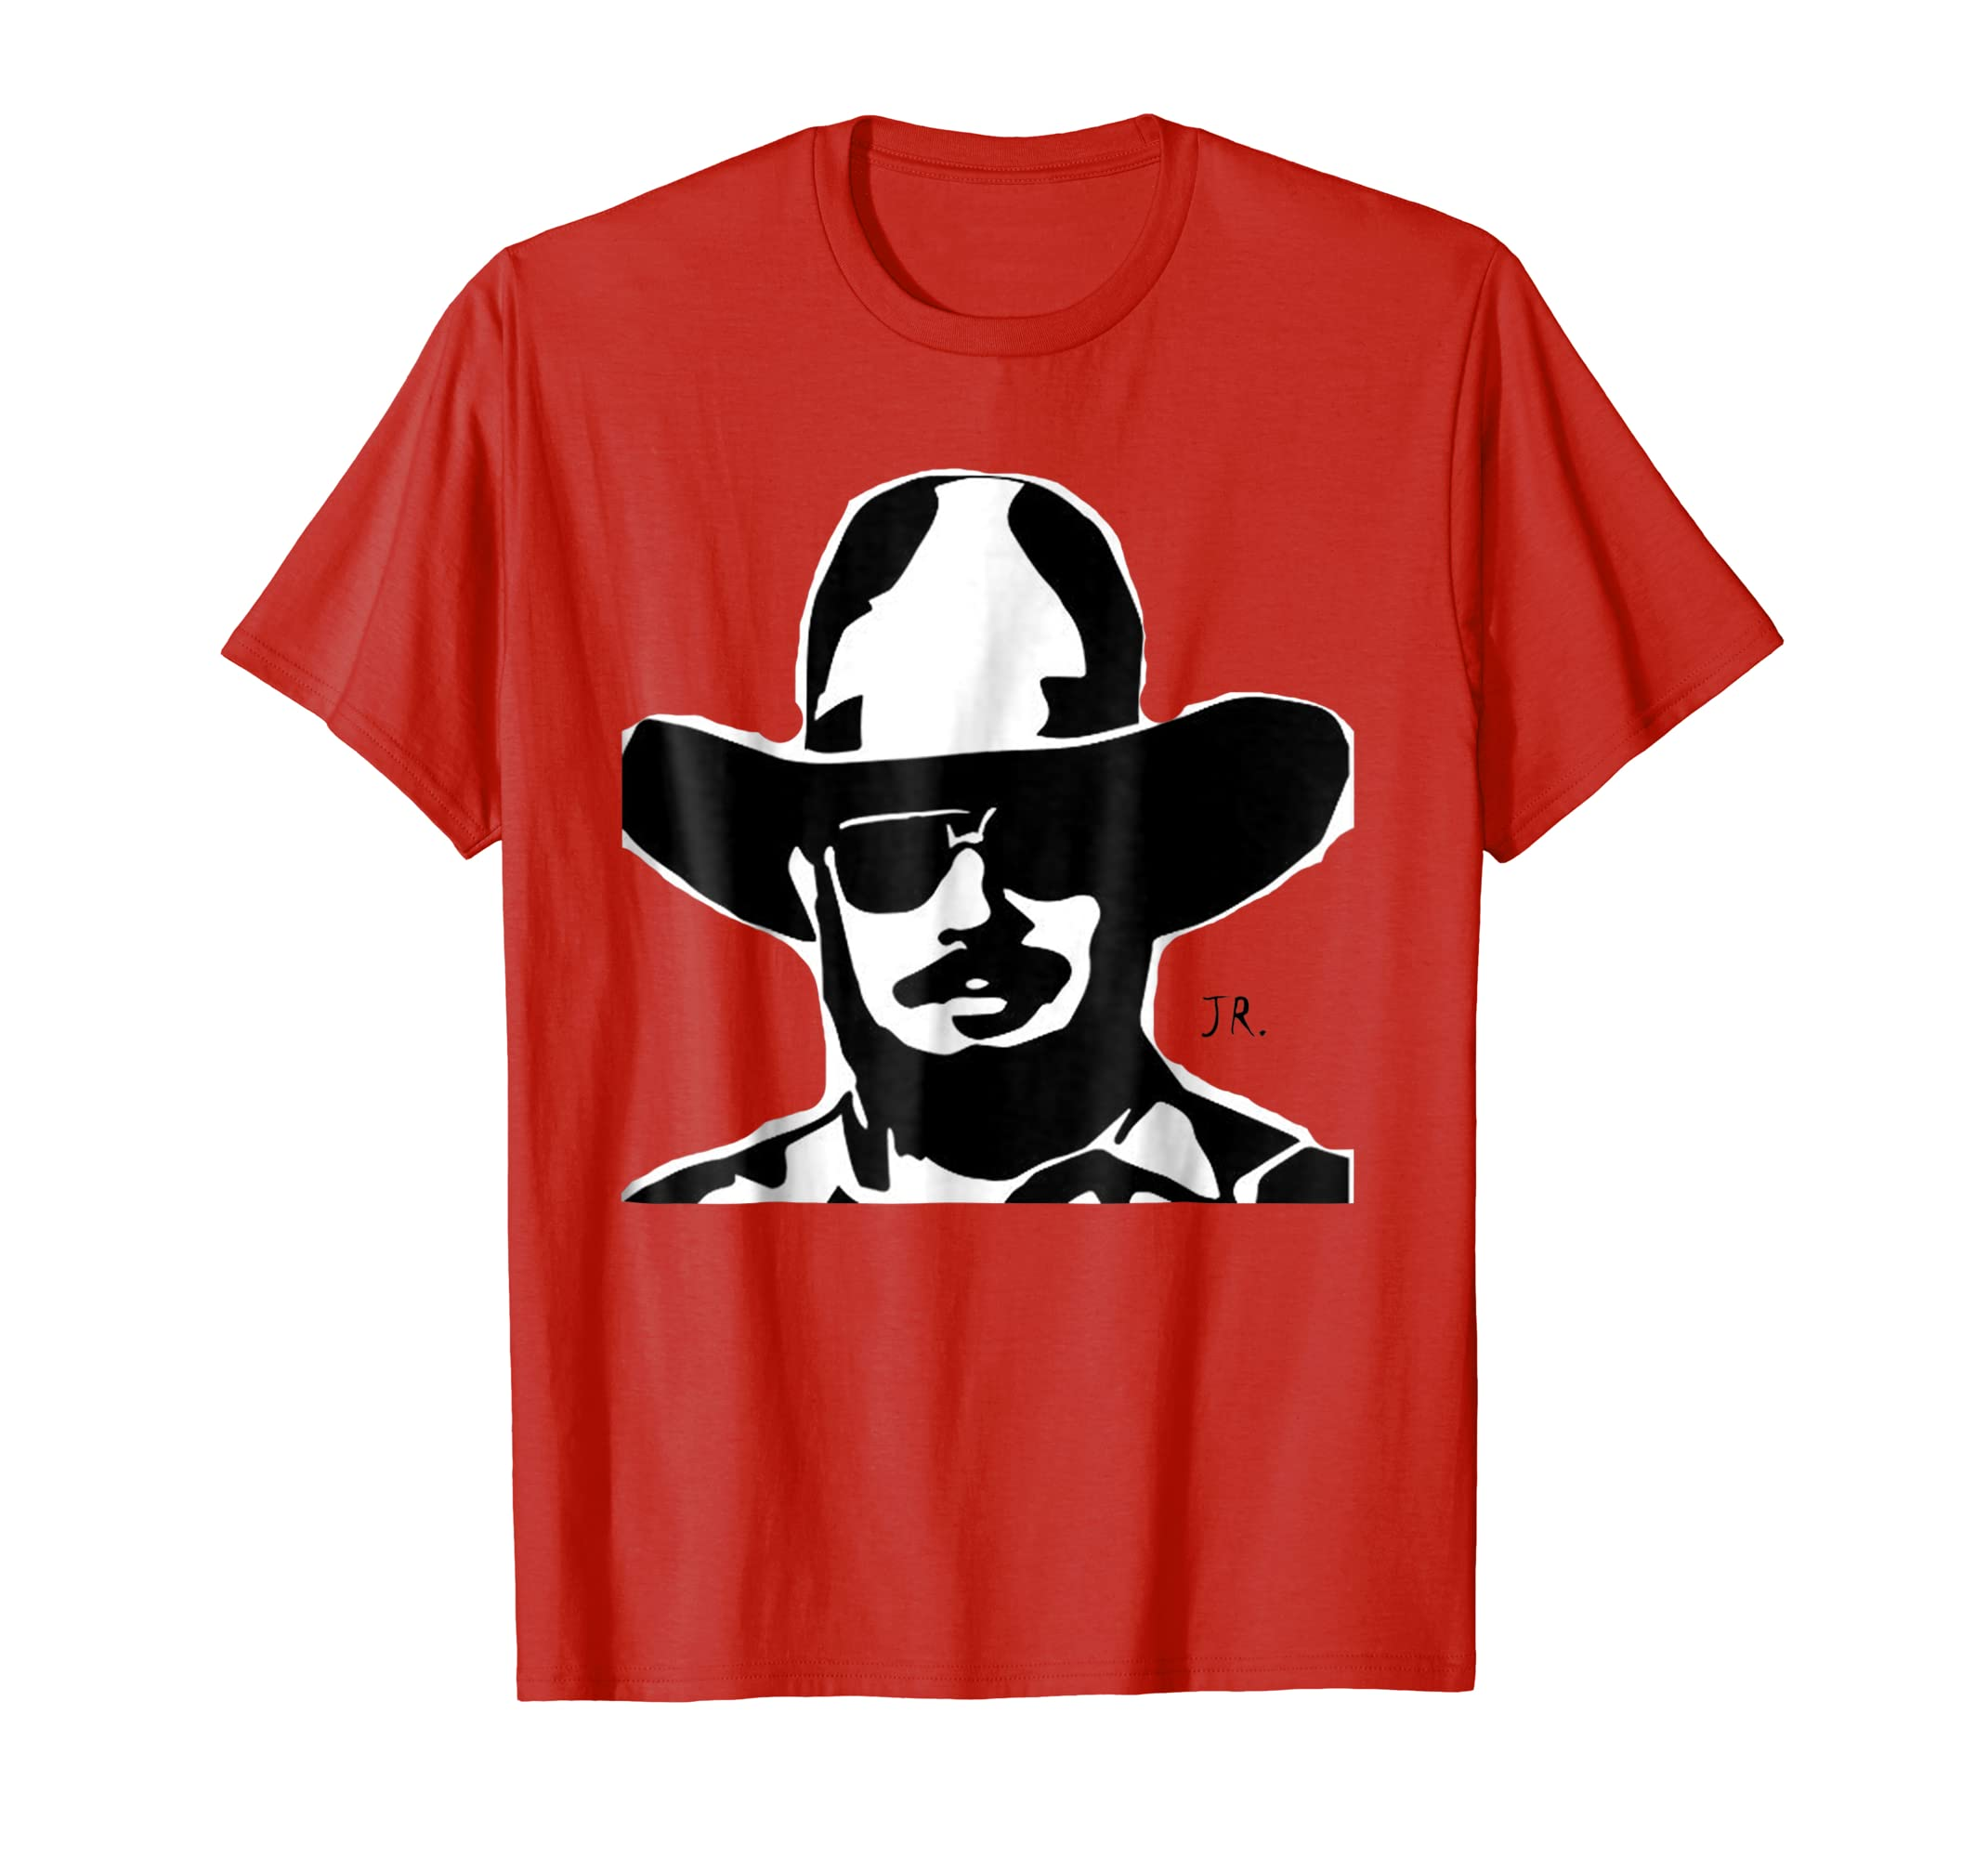 a1111825 Awesome Hank Jr Country Music Shirt-Colonhue